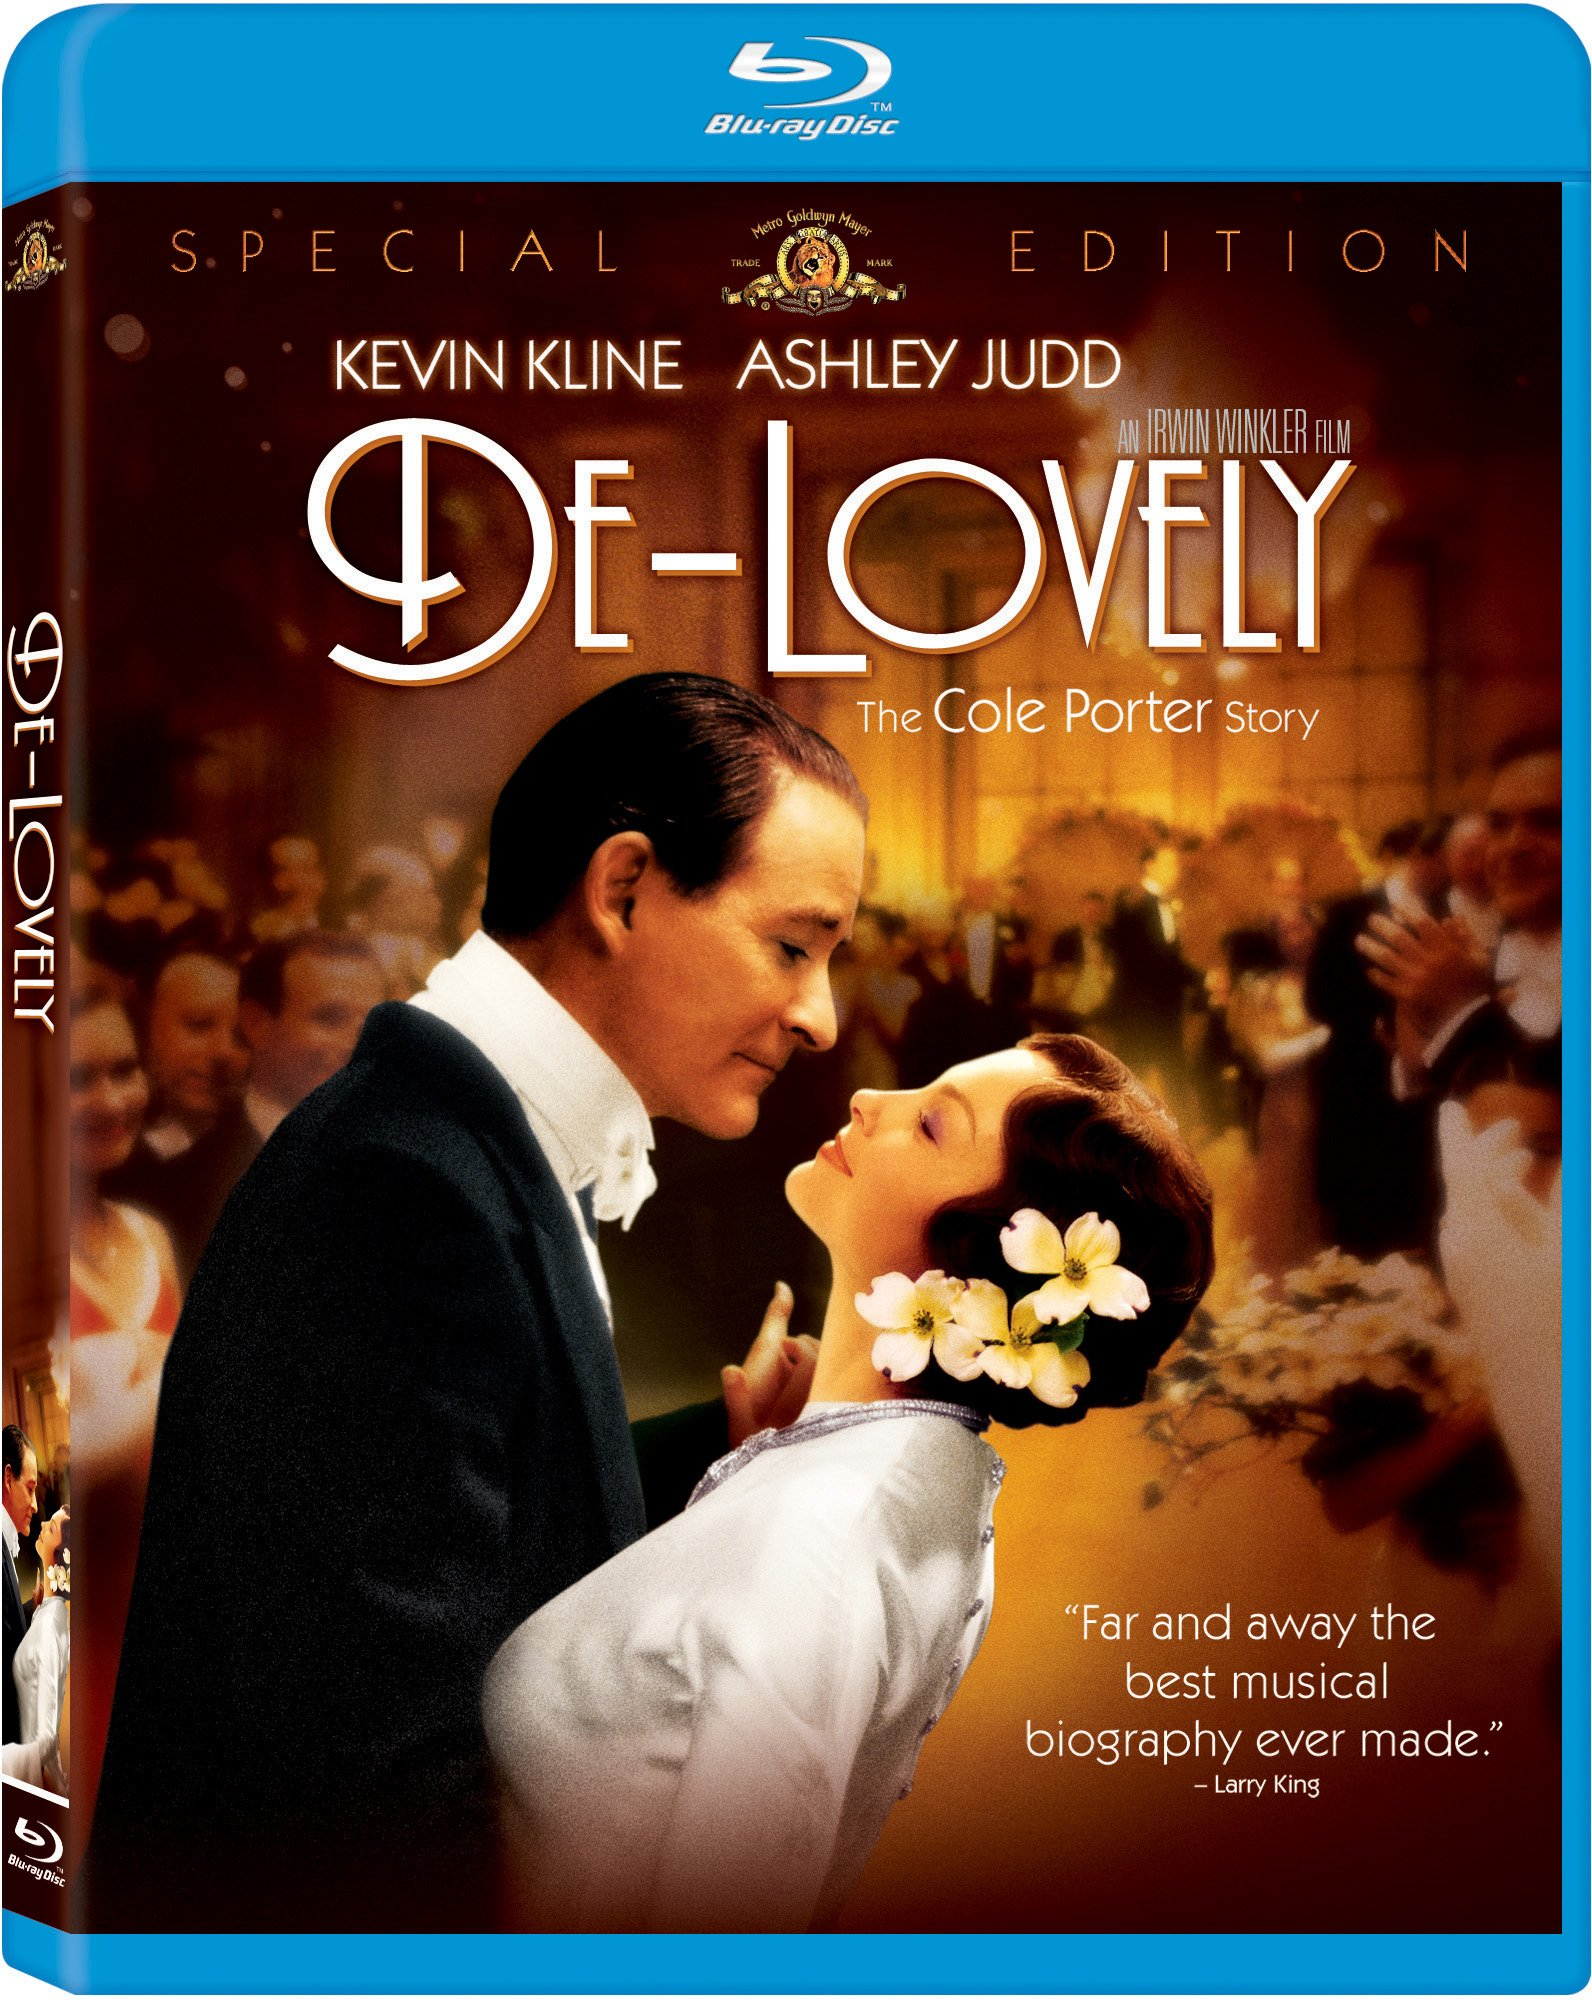 Blu-ray : Alan Corduner - De-Lovely (Widescreen)